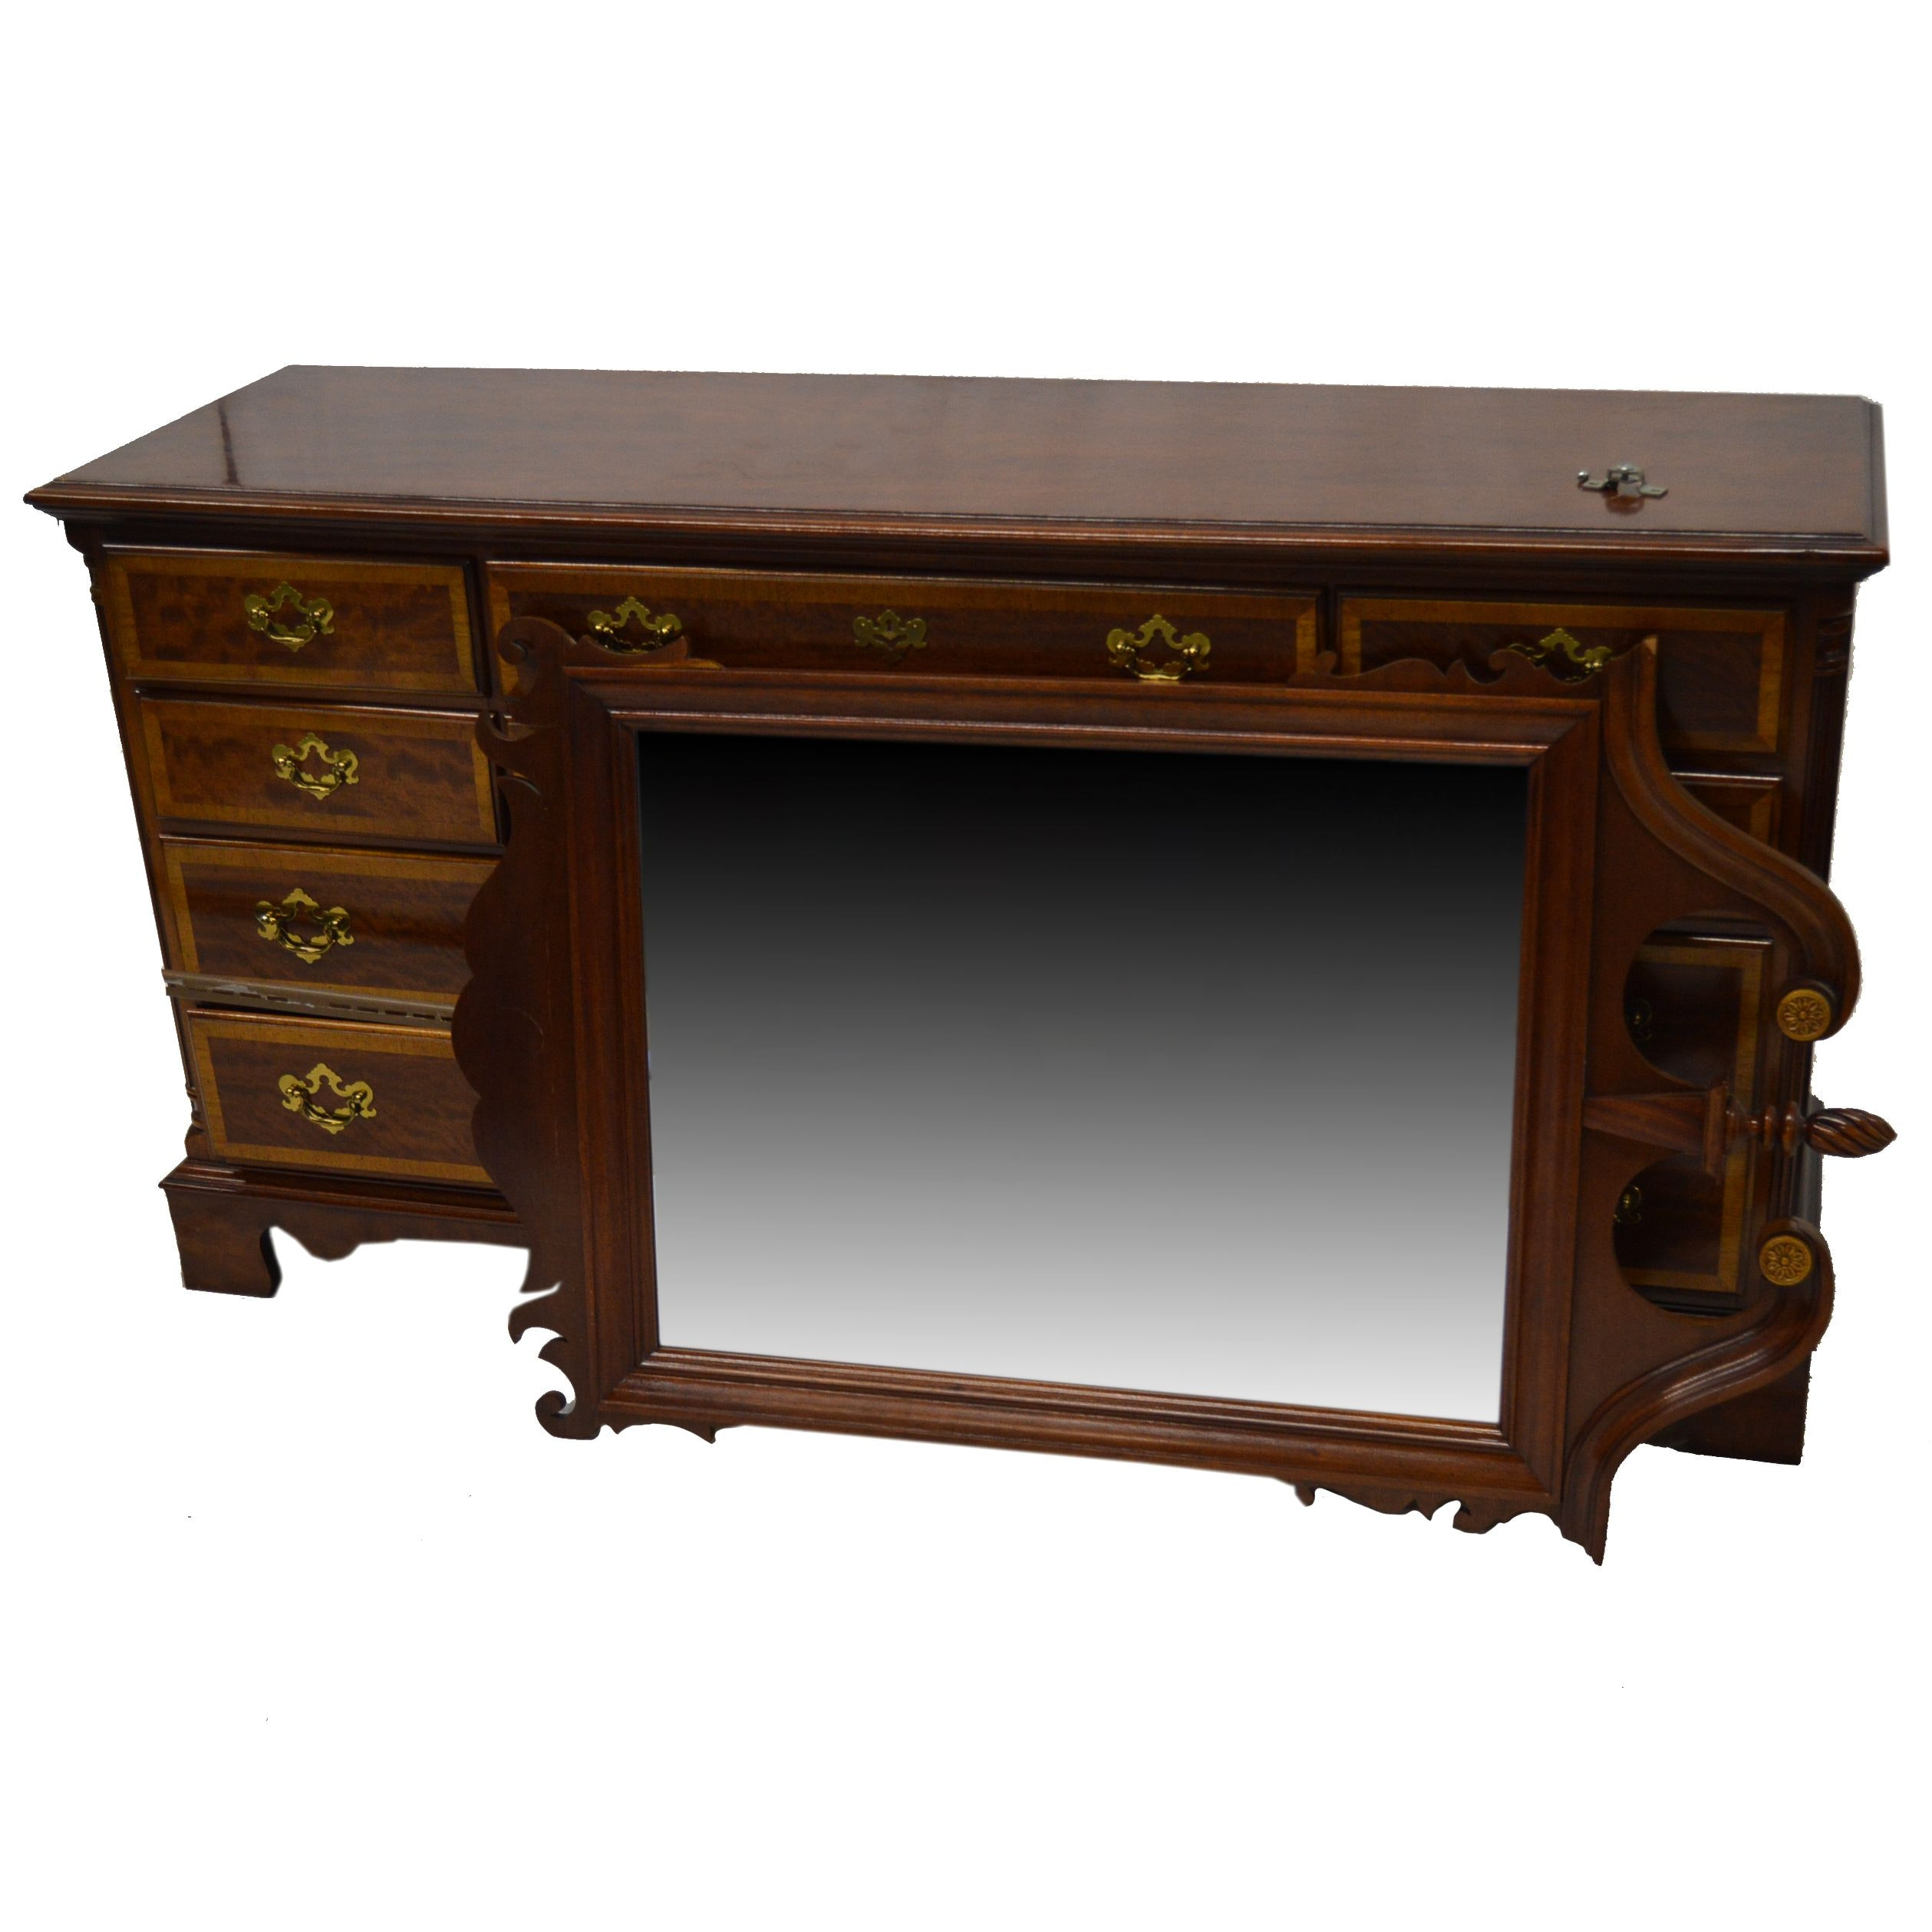 Georgian Style Mahogany Dresser with Mirror by Dixie Furniture